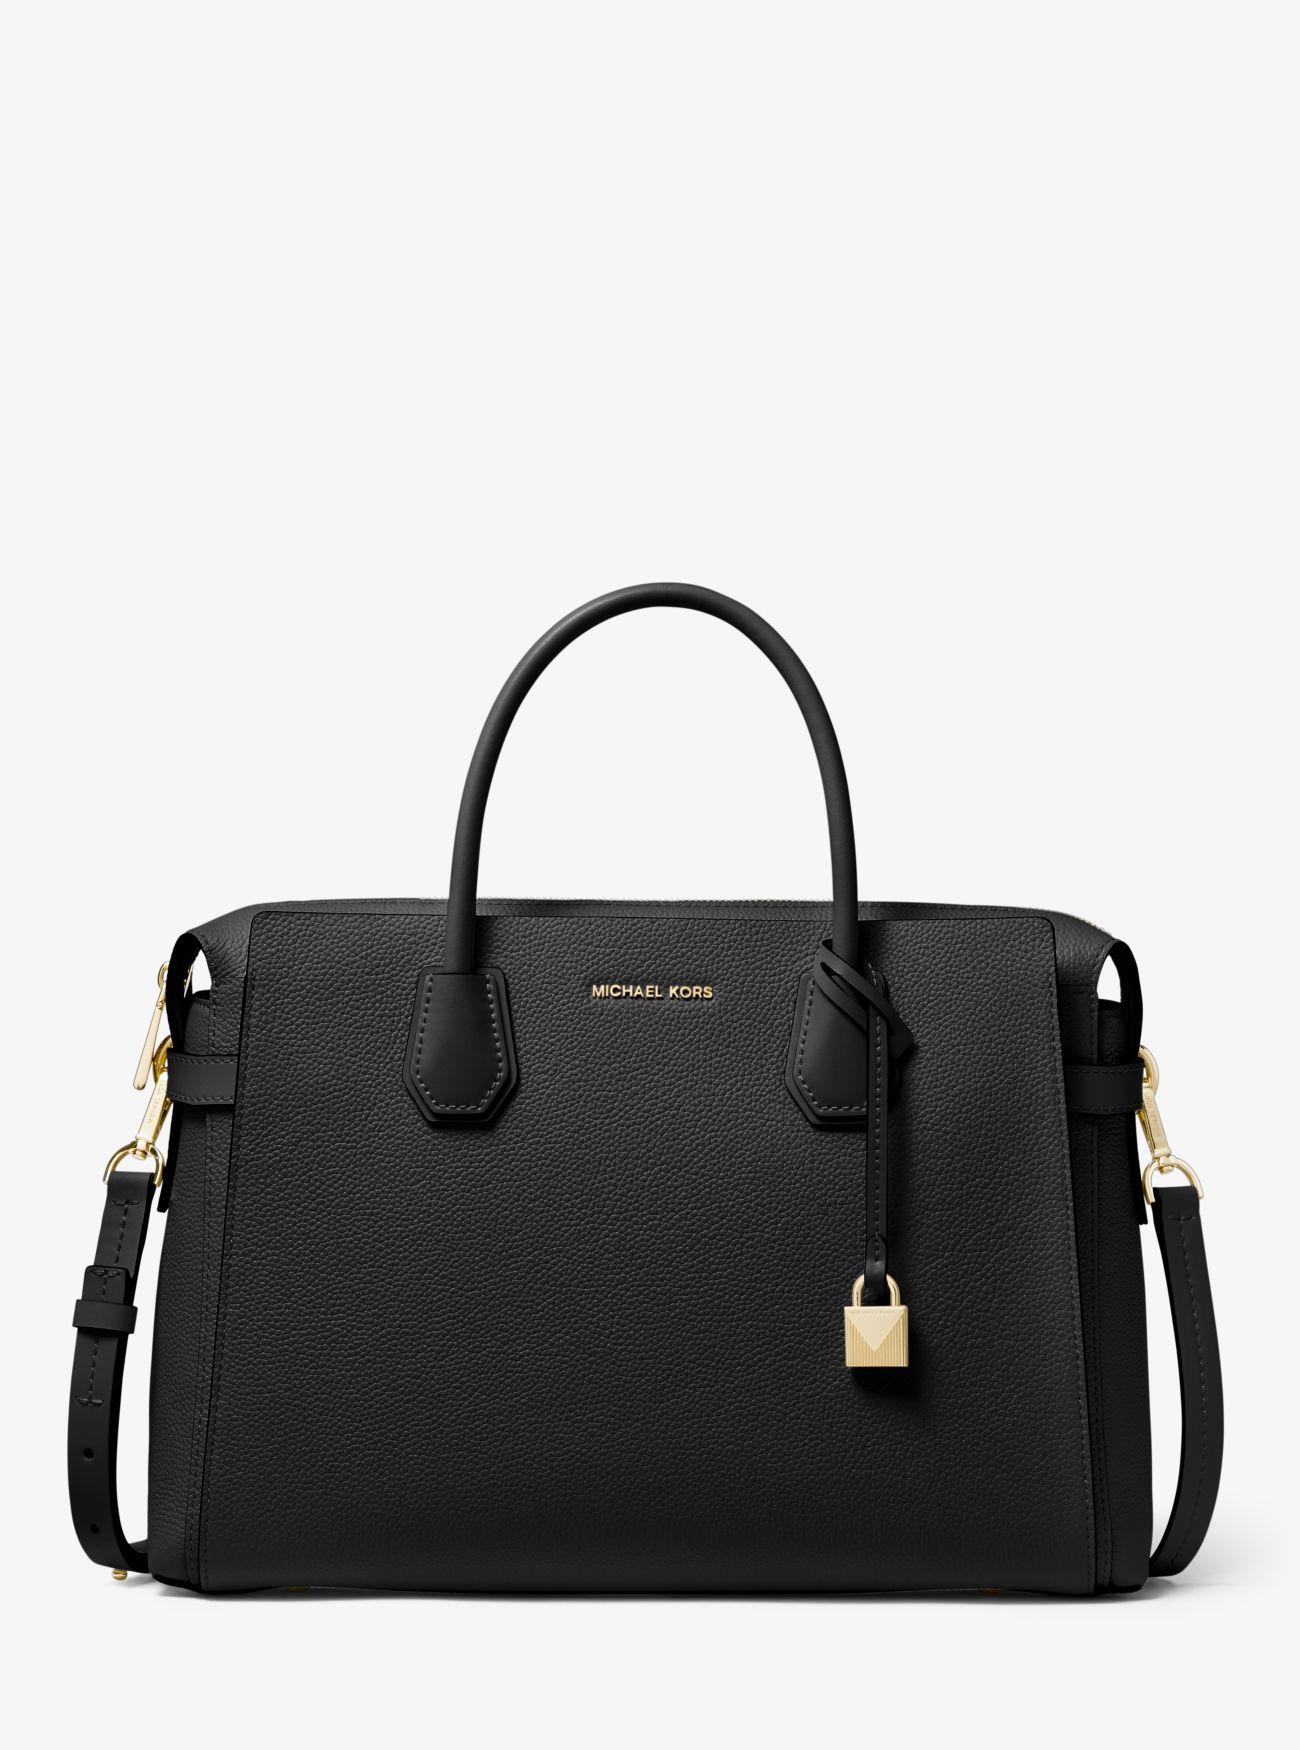 1b5cdd7cdc2f MICHAEL Michael Kors. Women's Black Mercer Large Pebbled Leather Belted  Satchel